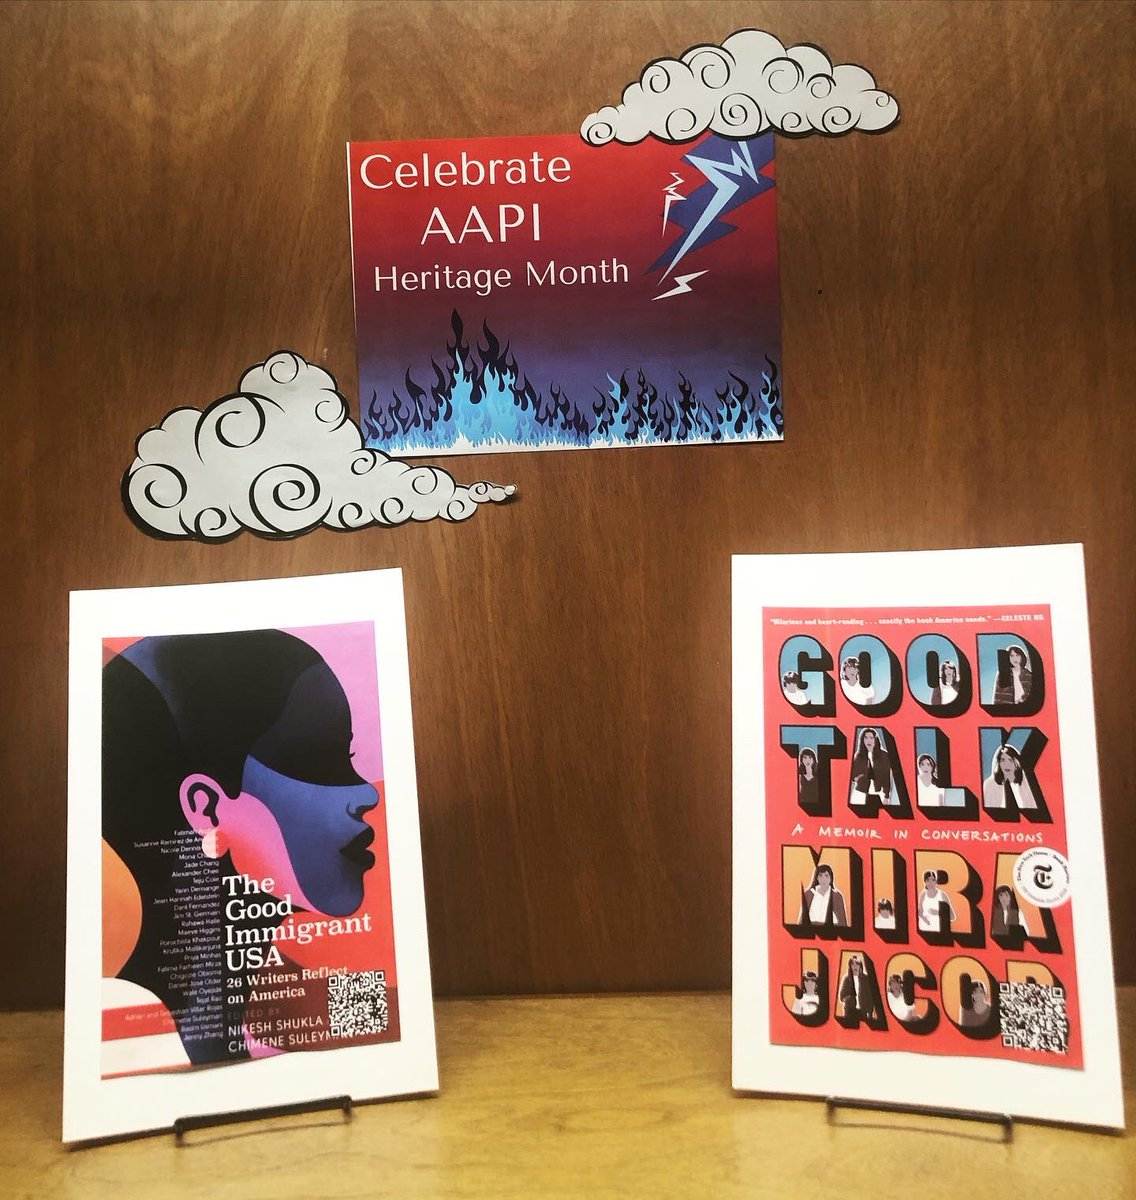 test Twitter Media - Our book display for AAPI heritage month is up! Swing by Olin and check it out - titles were contributed by students in the Asian American Student Collective, Wesleyan Student Assembly, and library student workers! What are you reading to celebrate? #AAPIHM  #AAPIHeritageMonth https://t.co/jg0Y0ePSQR